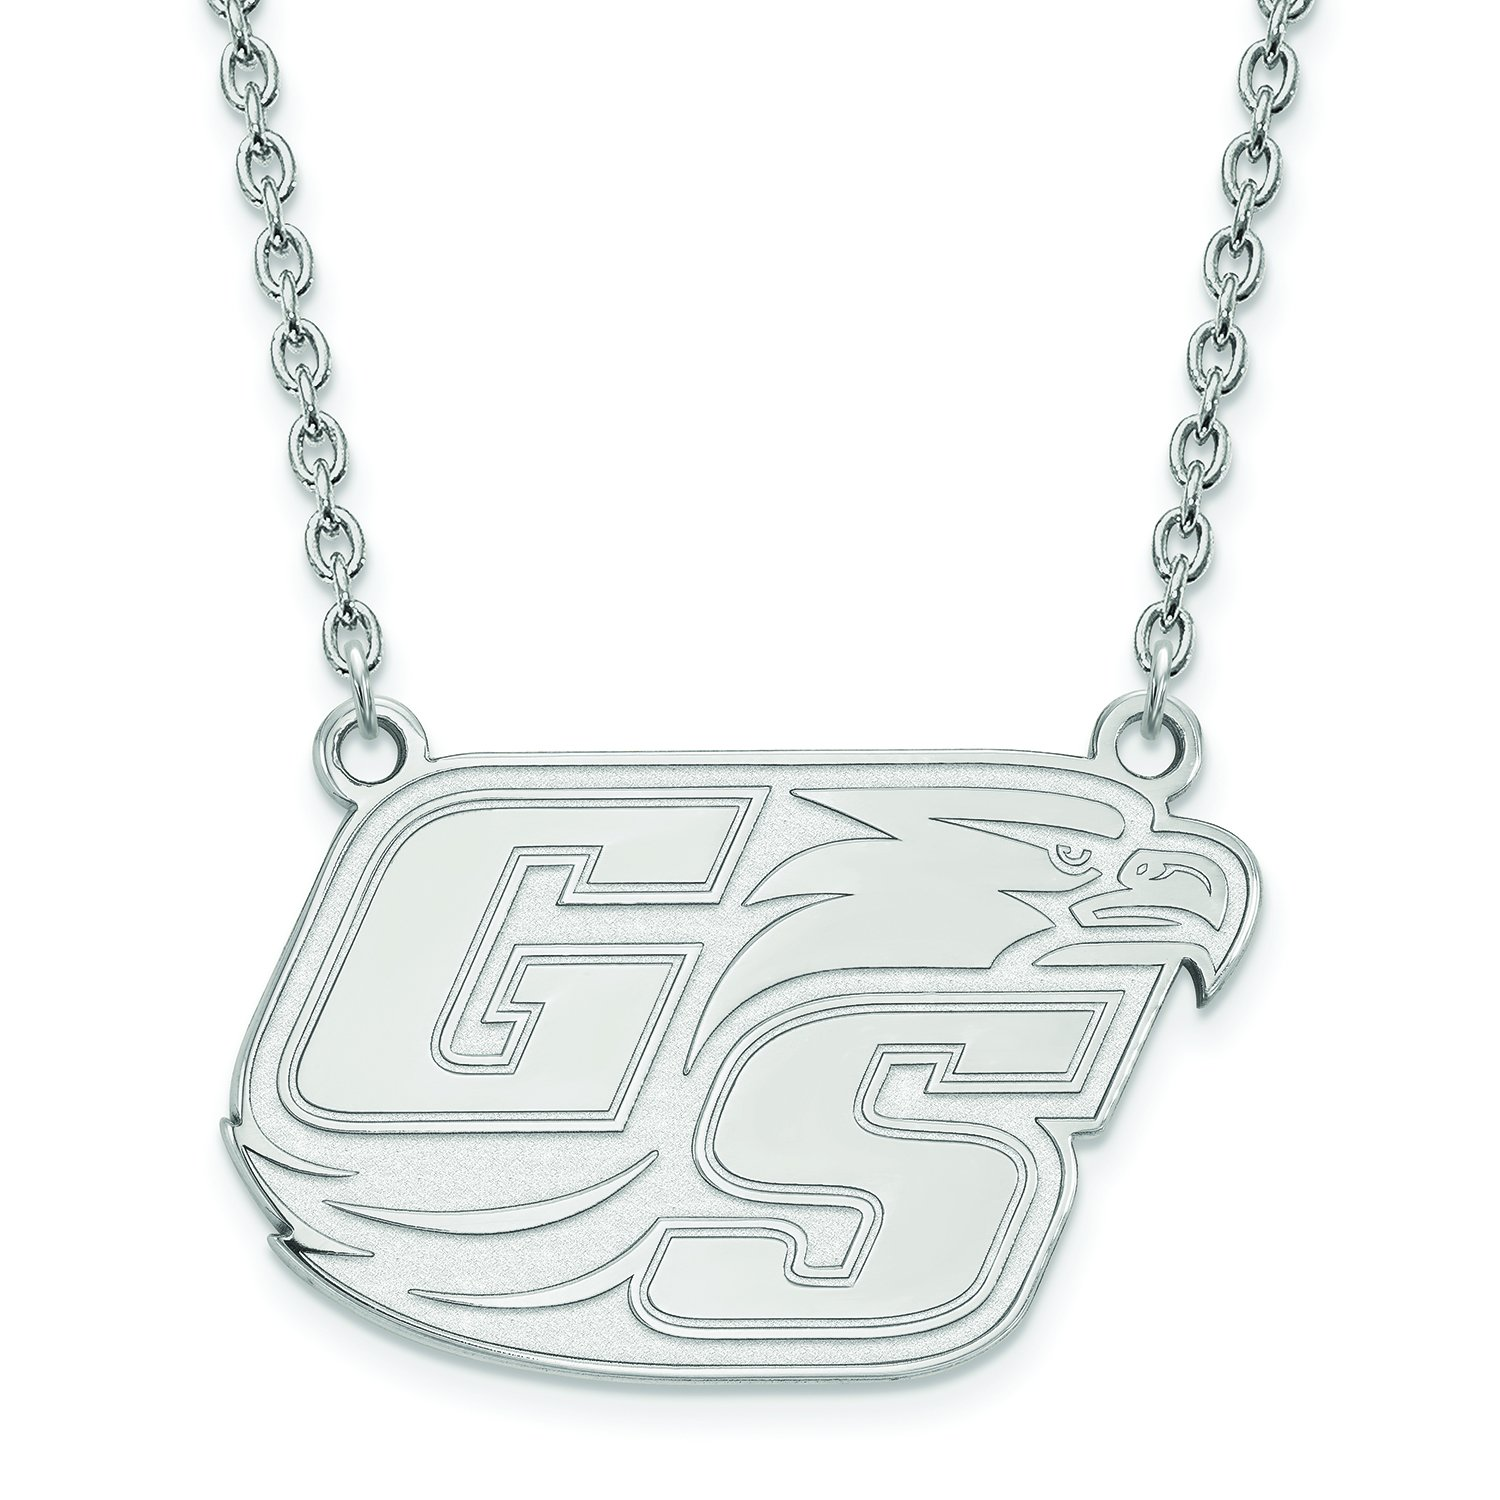 Georgia Southern Large ( 3 / 4インチ)ペンダントW /ネックレス( Sterling Sliver )   B01JAPBSH4